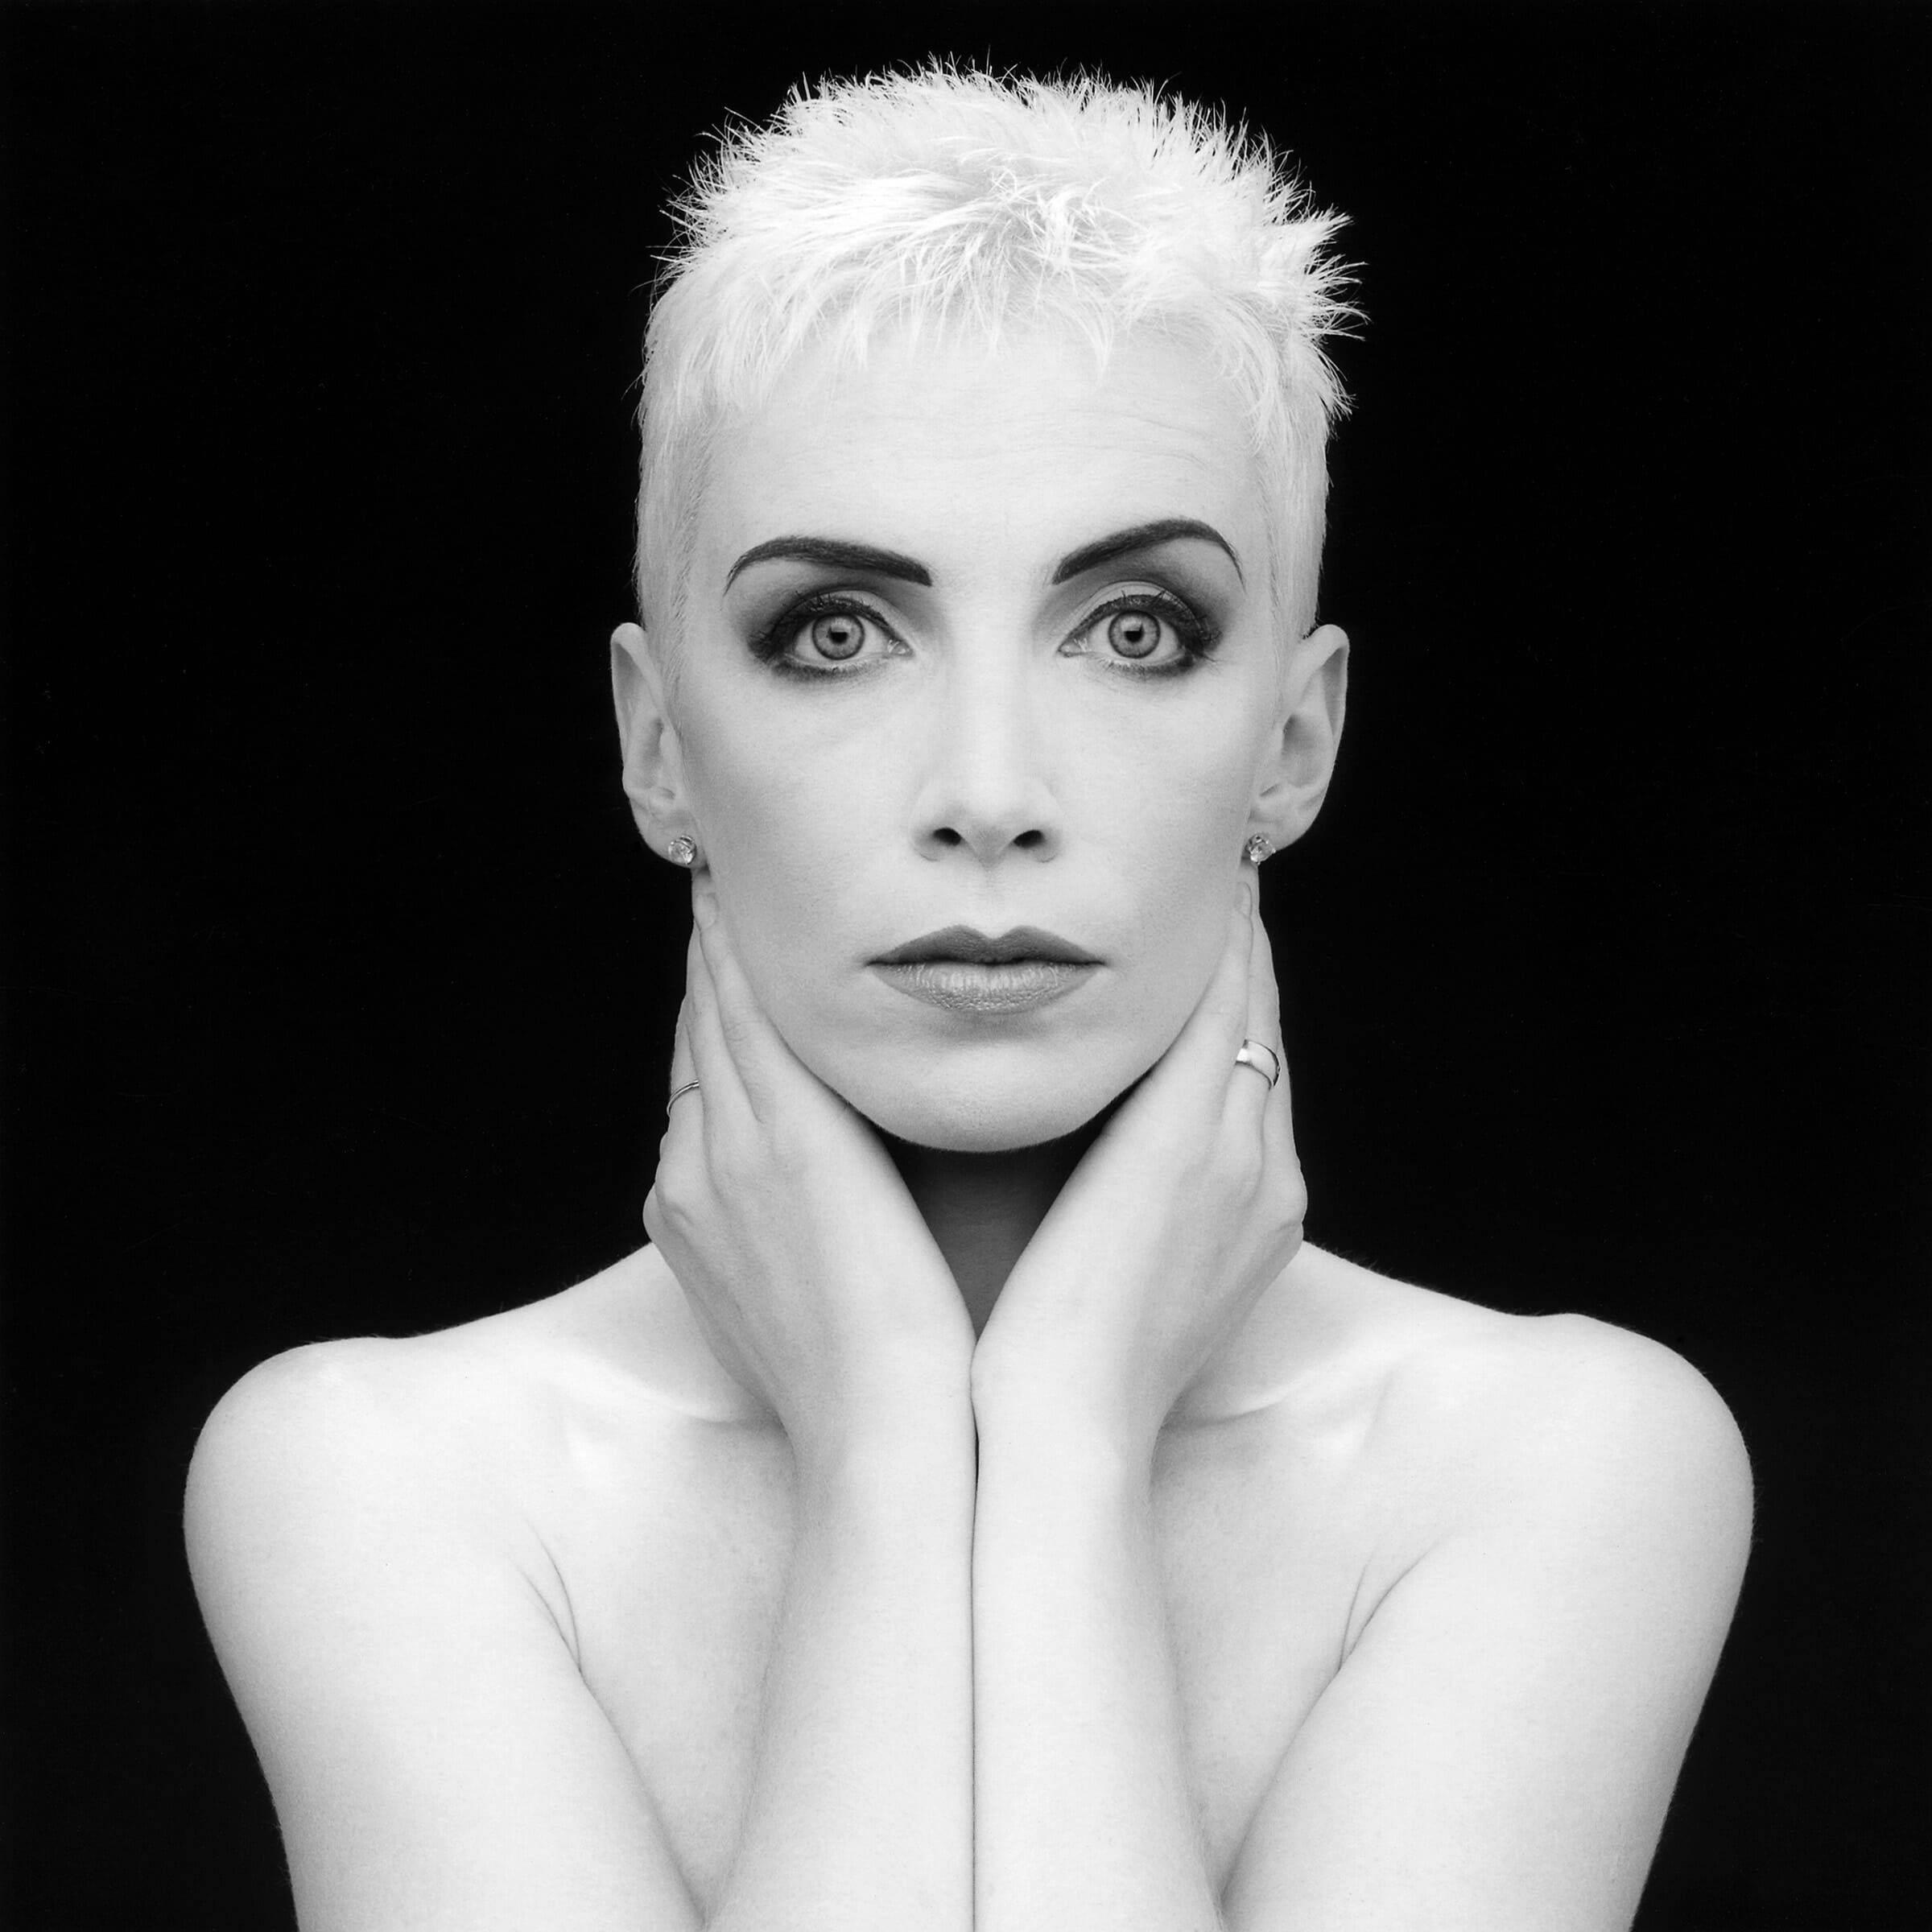 annie lennox touching her face